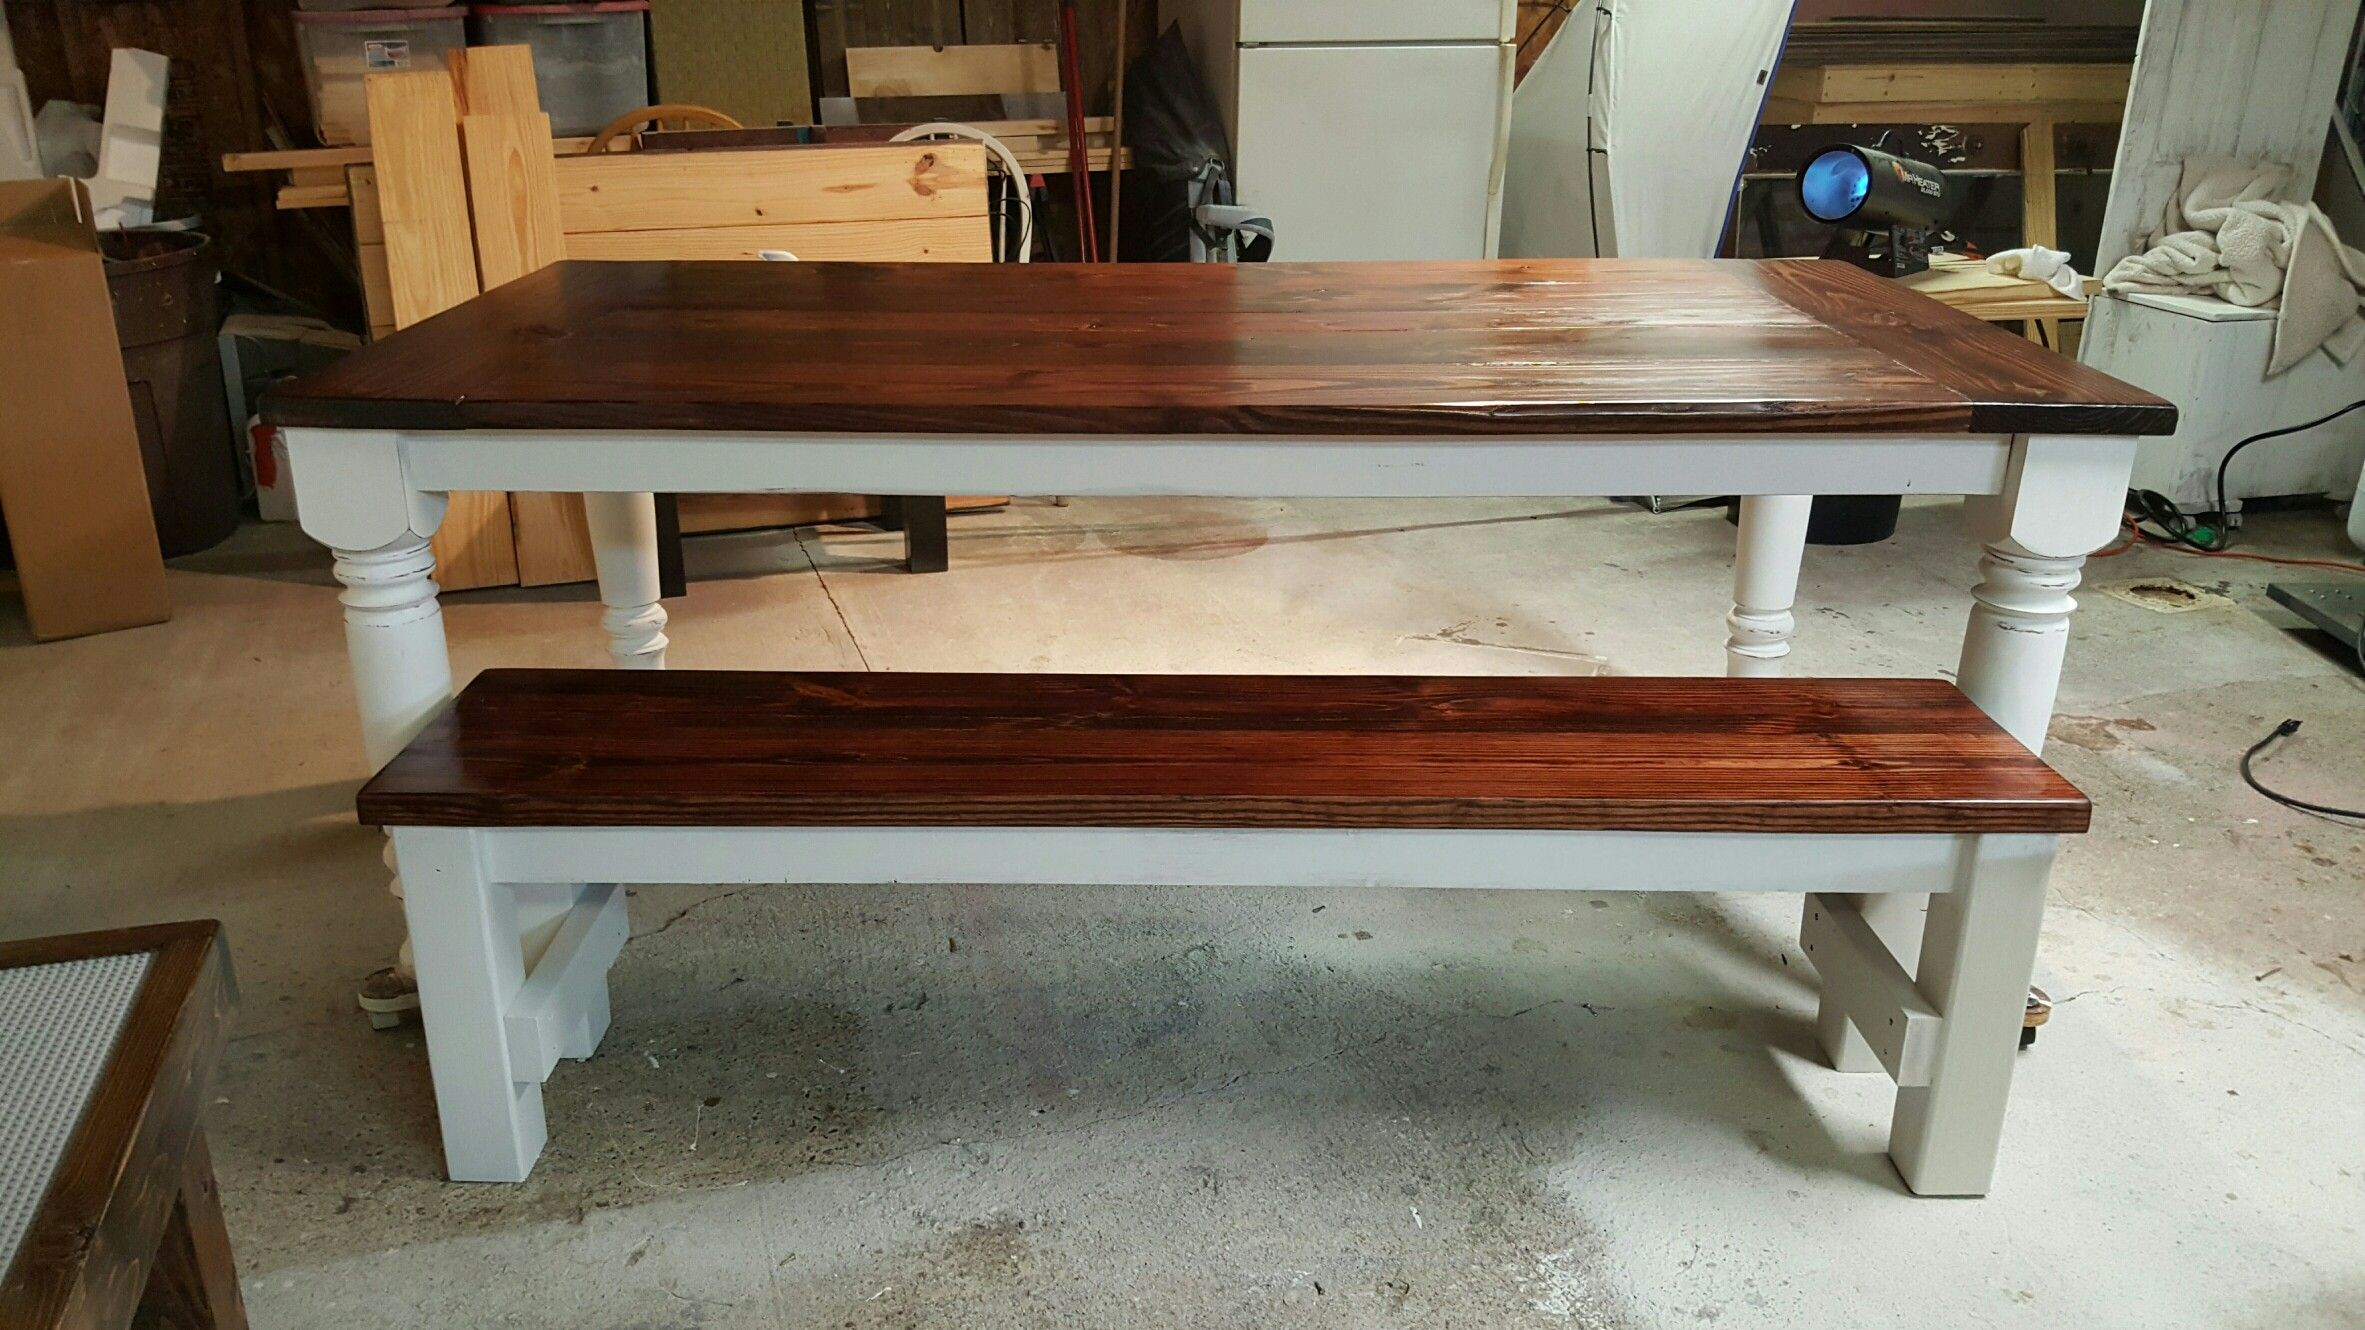 7 Ft X 3.5 Farm House Table Red Mahogany Top Distressed With Base 5 Inch  Legs With A Bench. #FarmtablesnmorebyJerrod #Distressed #Farmtable  #Diningset ...